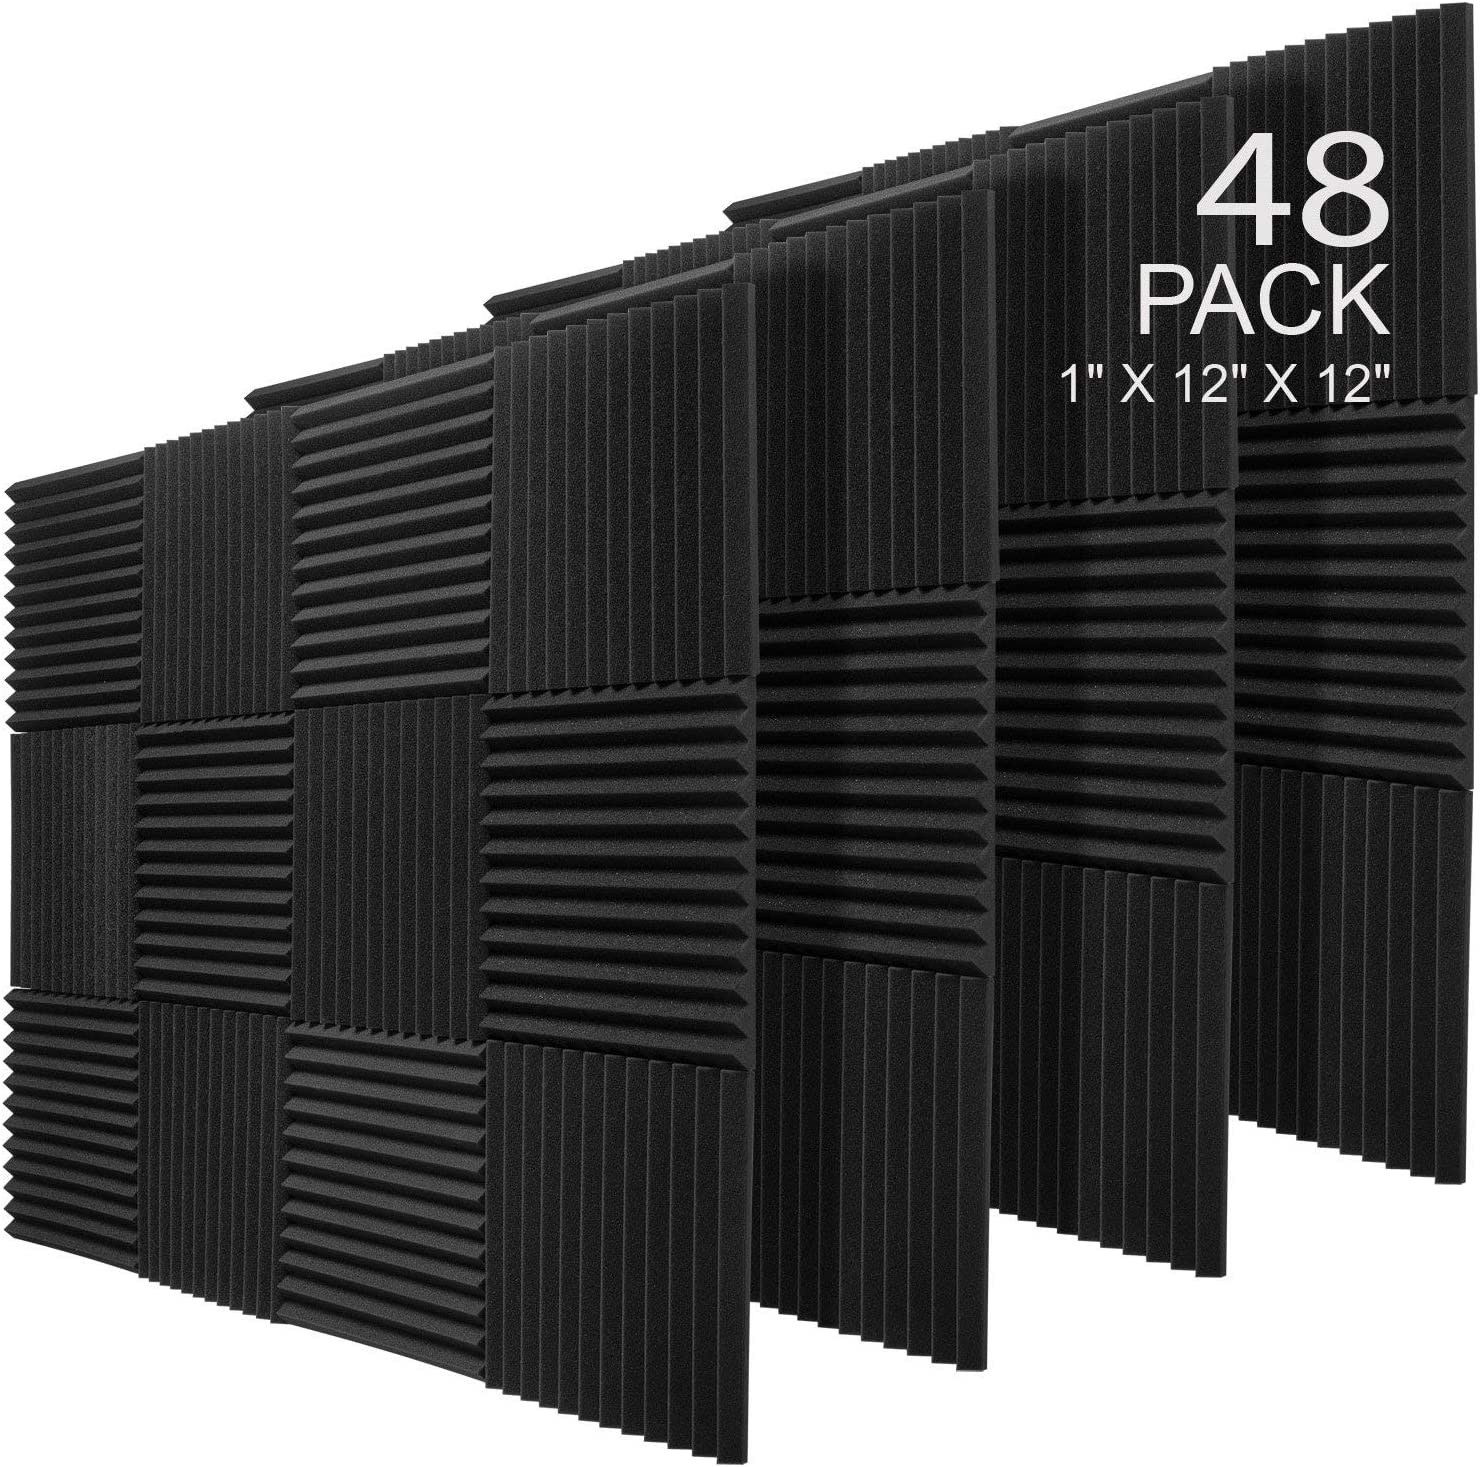 JBER 48 Pack Charcoal Acoustic Panels Studio Foam Wedges Fireproof Soundproof Padding Wall Panels 1